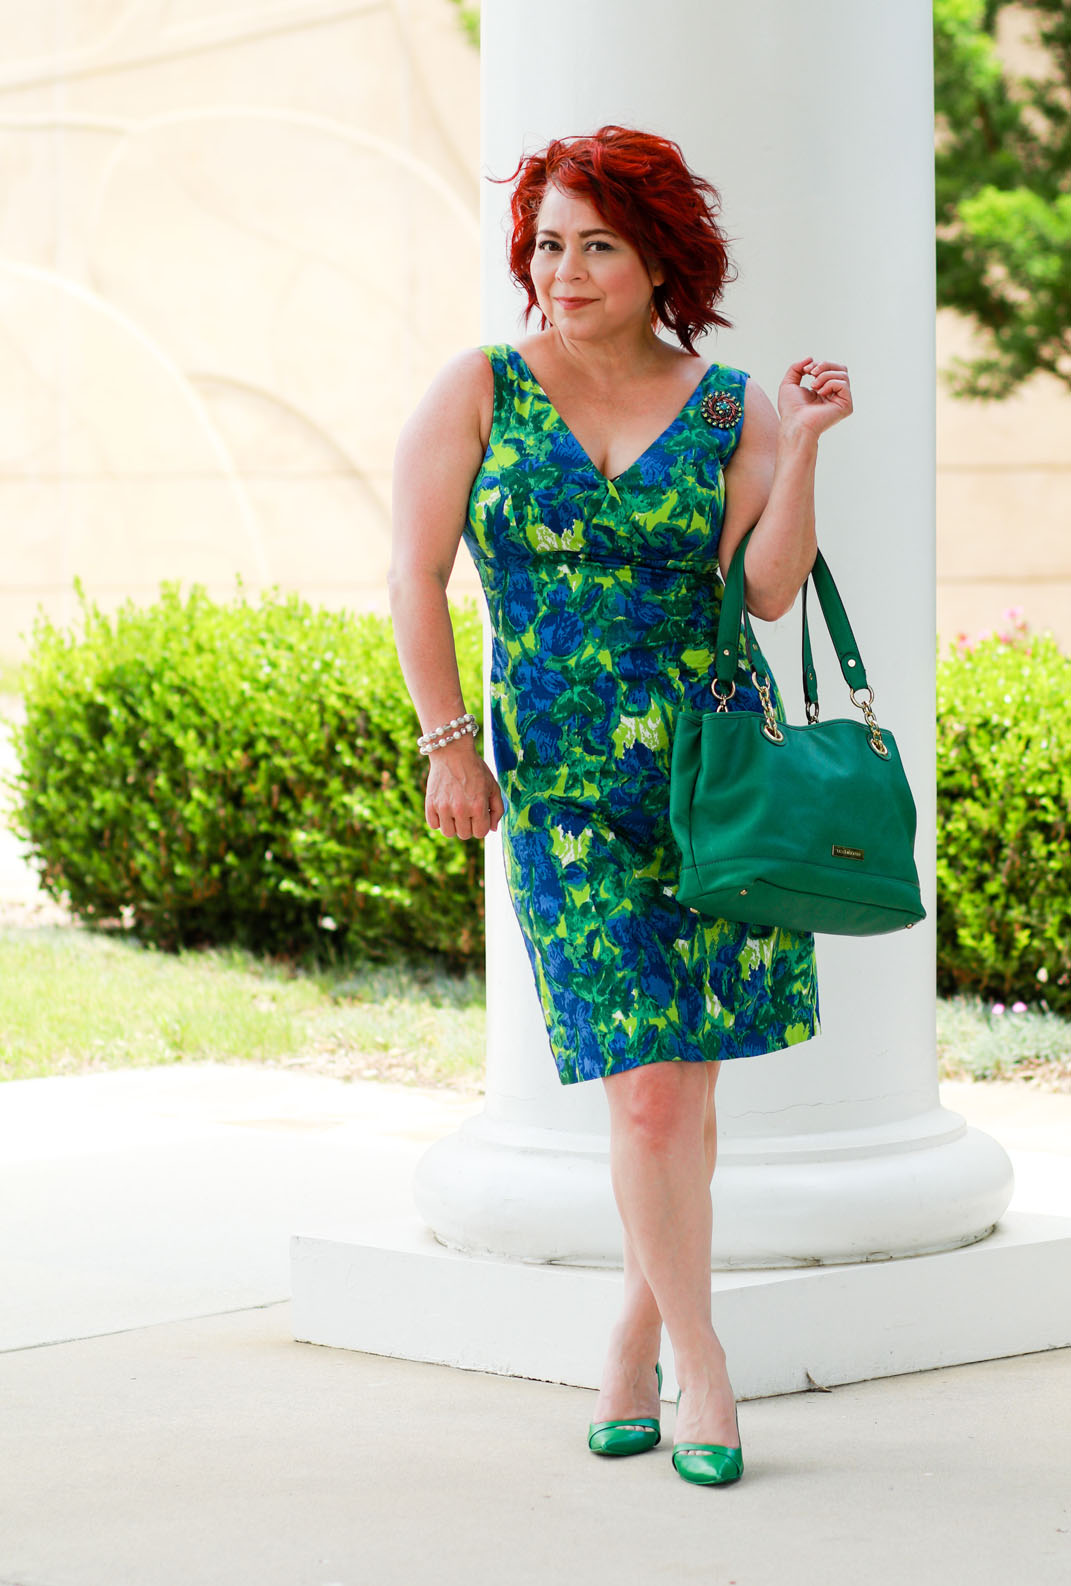 Over 40 fashion blogger Jennie of A Pocket Full of Polka Dots in a Kelly green floral dress